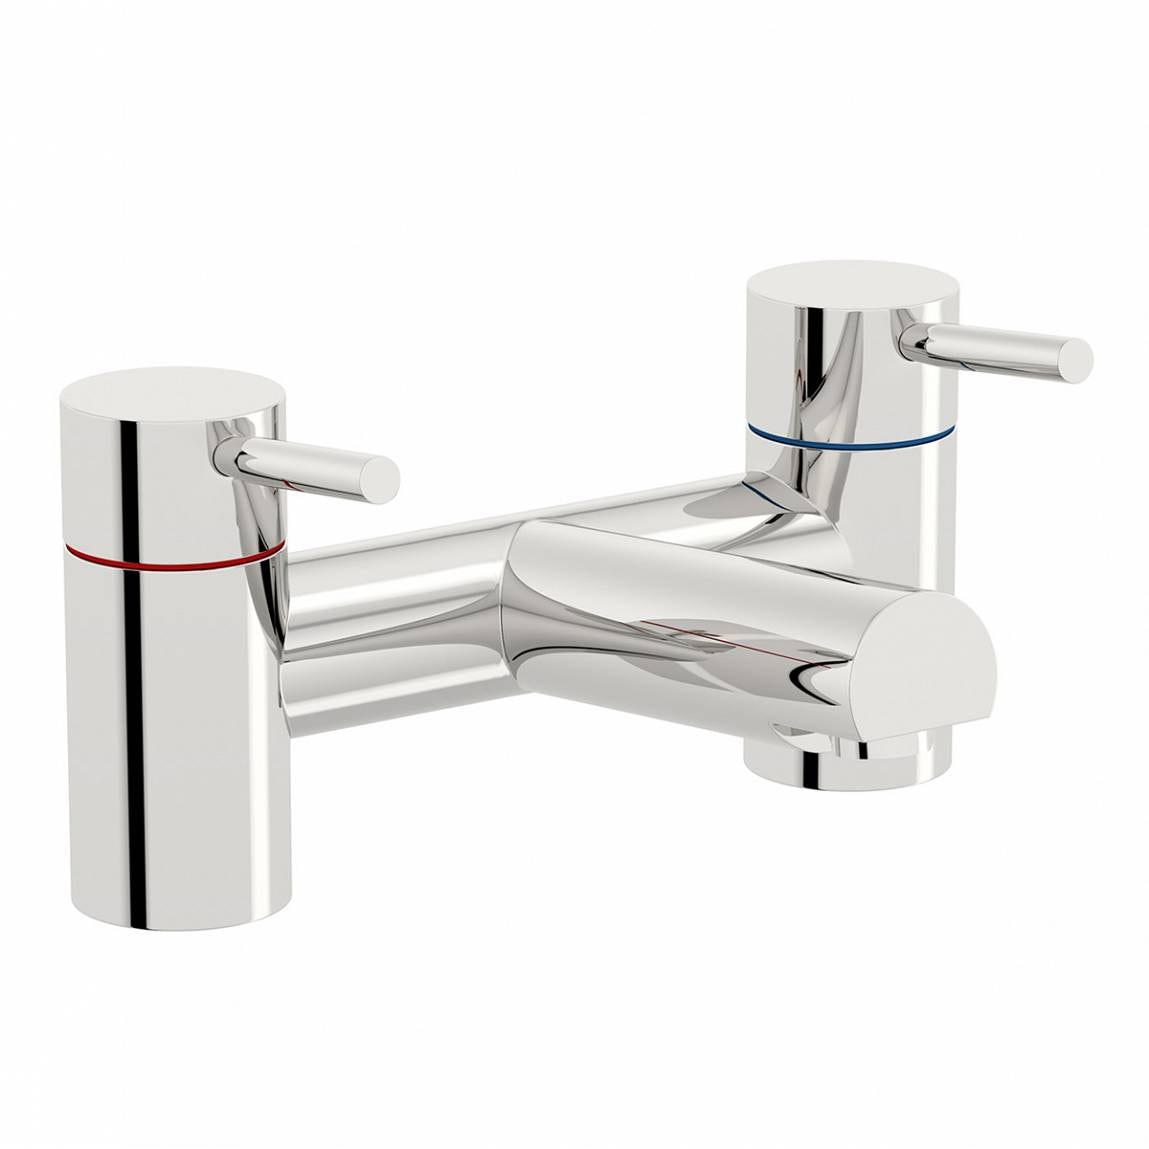 Matrix bath mixer tap